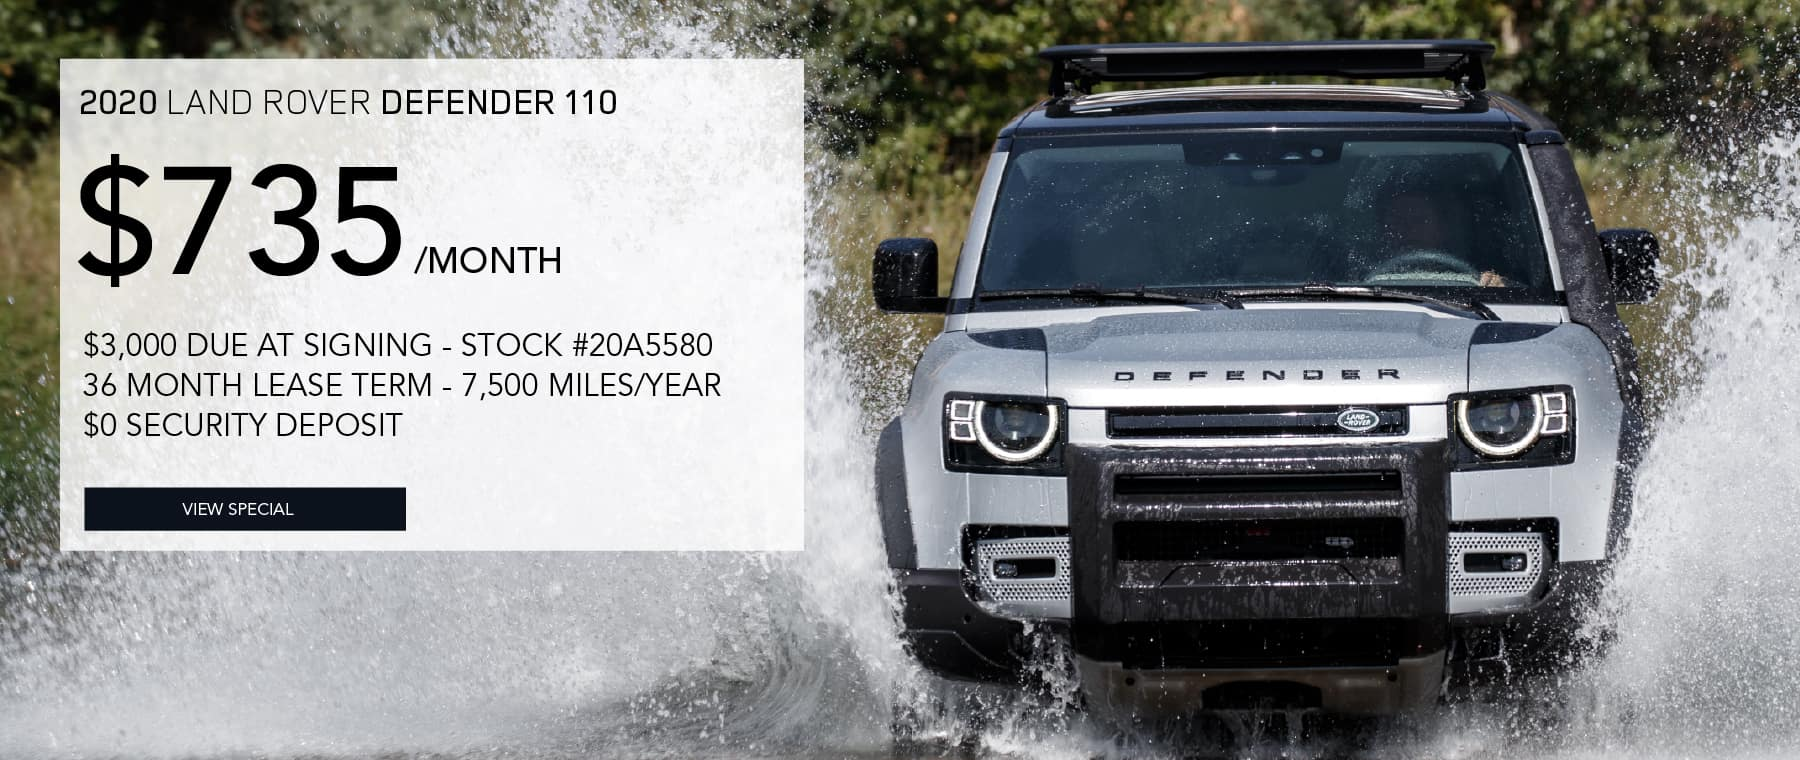 2020 LAND ROVER DEFENDER 110. $735 PER MONTH FOR 36 MONTHS. $3,000 DUE AT SIGNING. STOCK #20A5580. 7,500 MILES/YEAR. $0 SECURITY DEPOSIT. VIEW SPECAIL. SILVER LAND ROVER DEFENDER DRIVING INTO LAKE AND SPLASHING WATER.